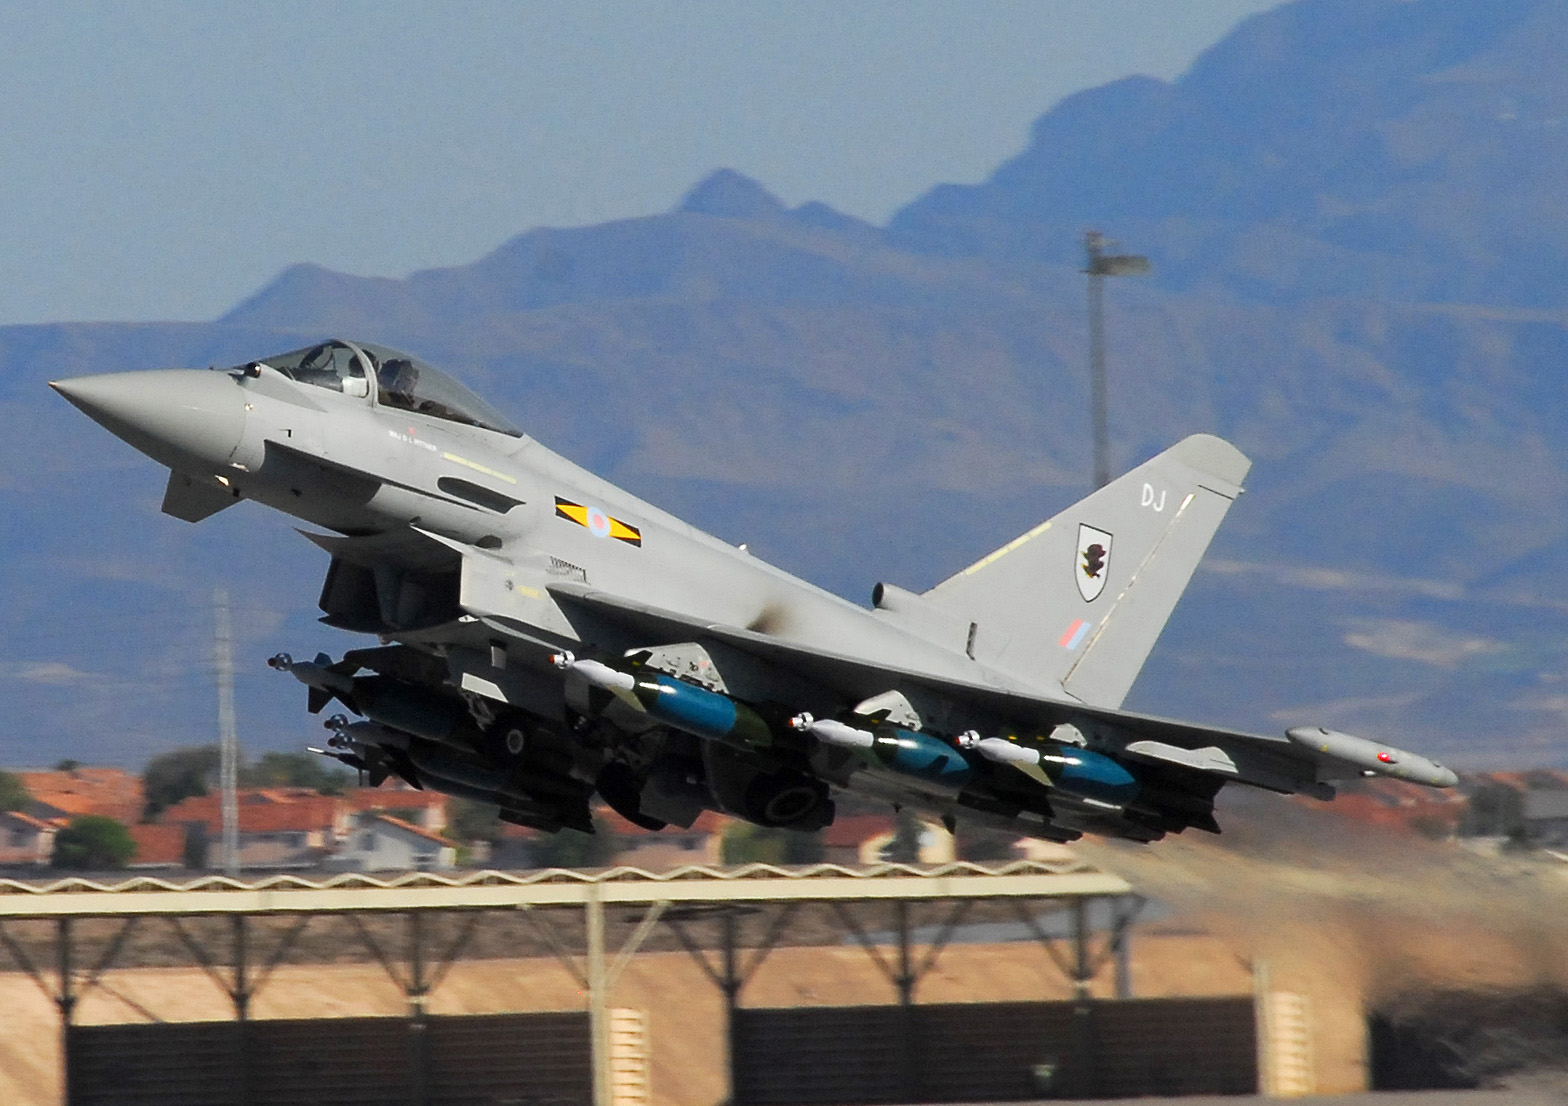 http://upload.wikimedia.org/wikipedia/commons/6/69/Eurofighter-NellisAFB-2008.jpg